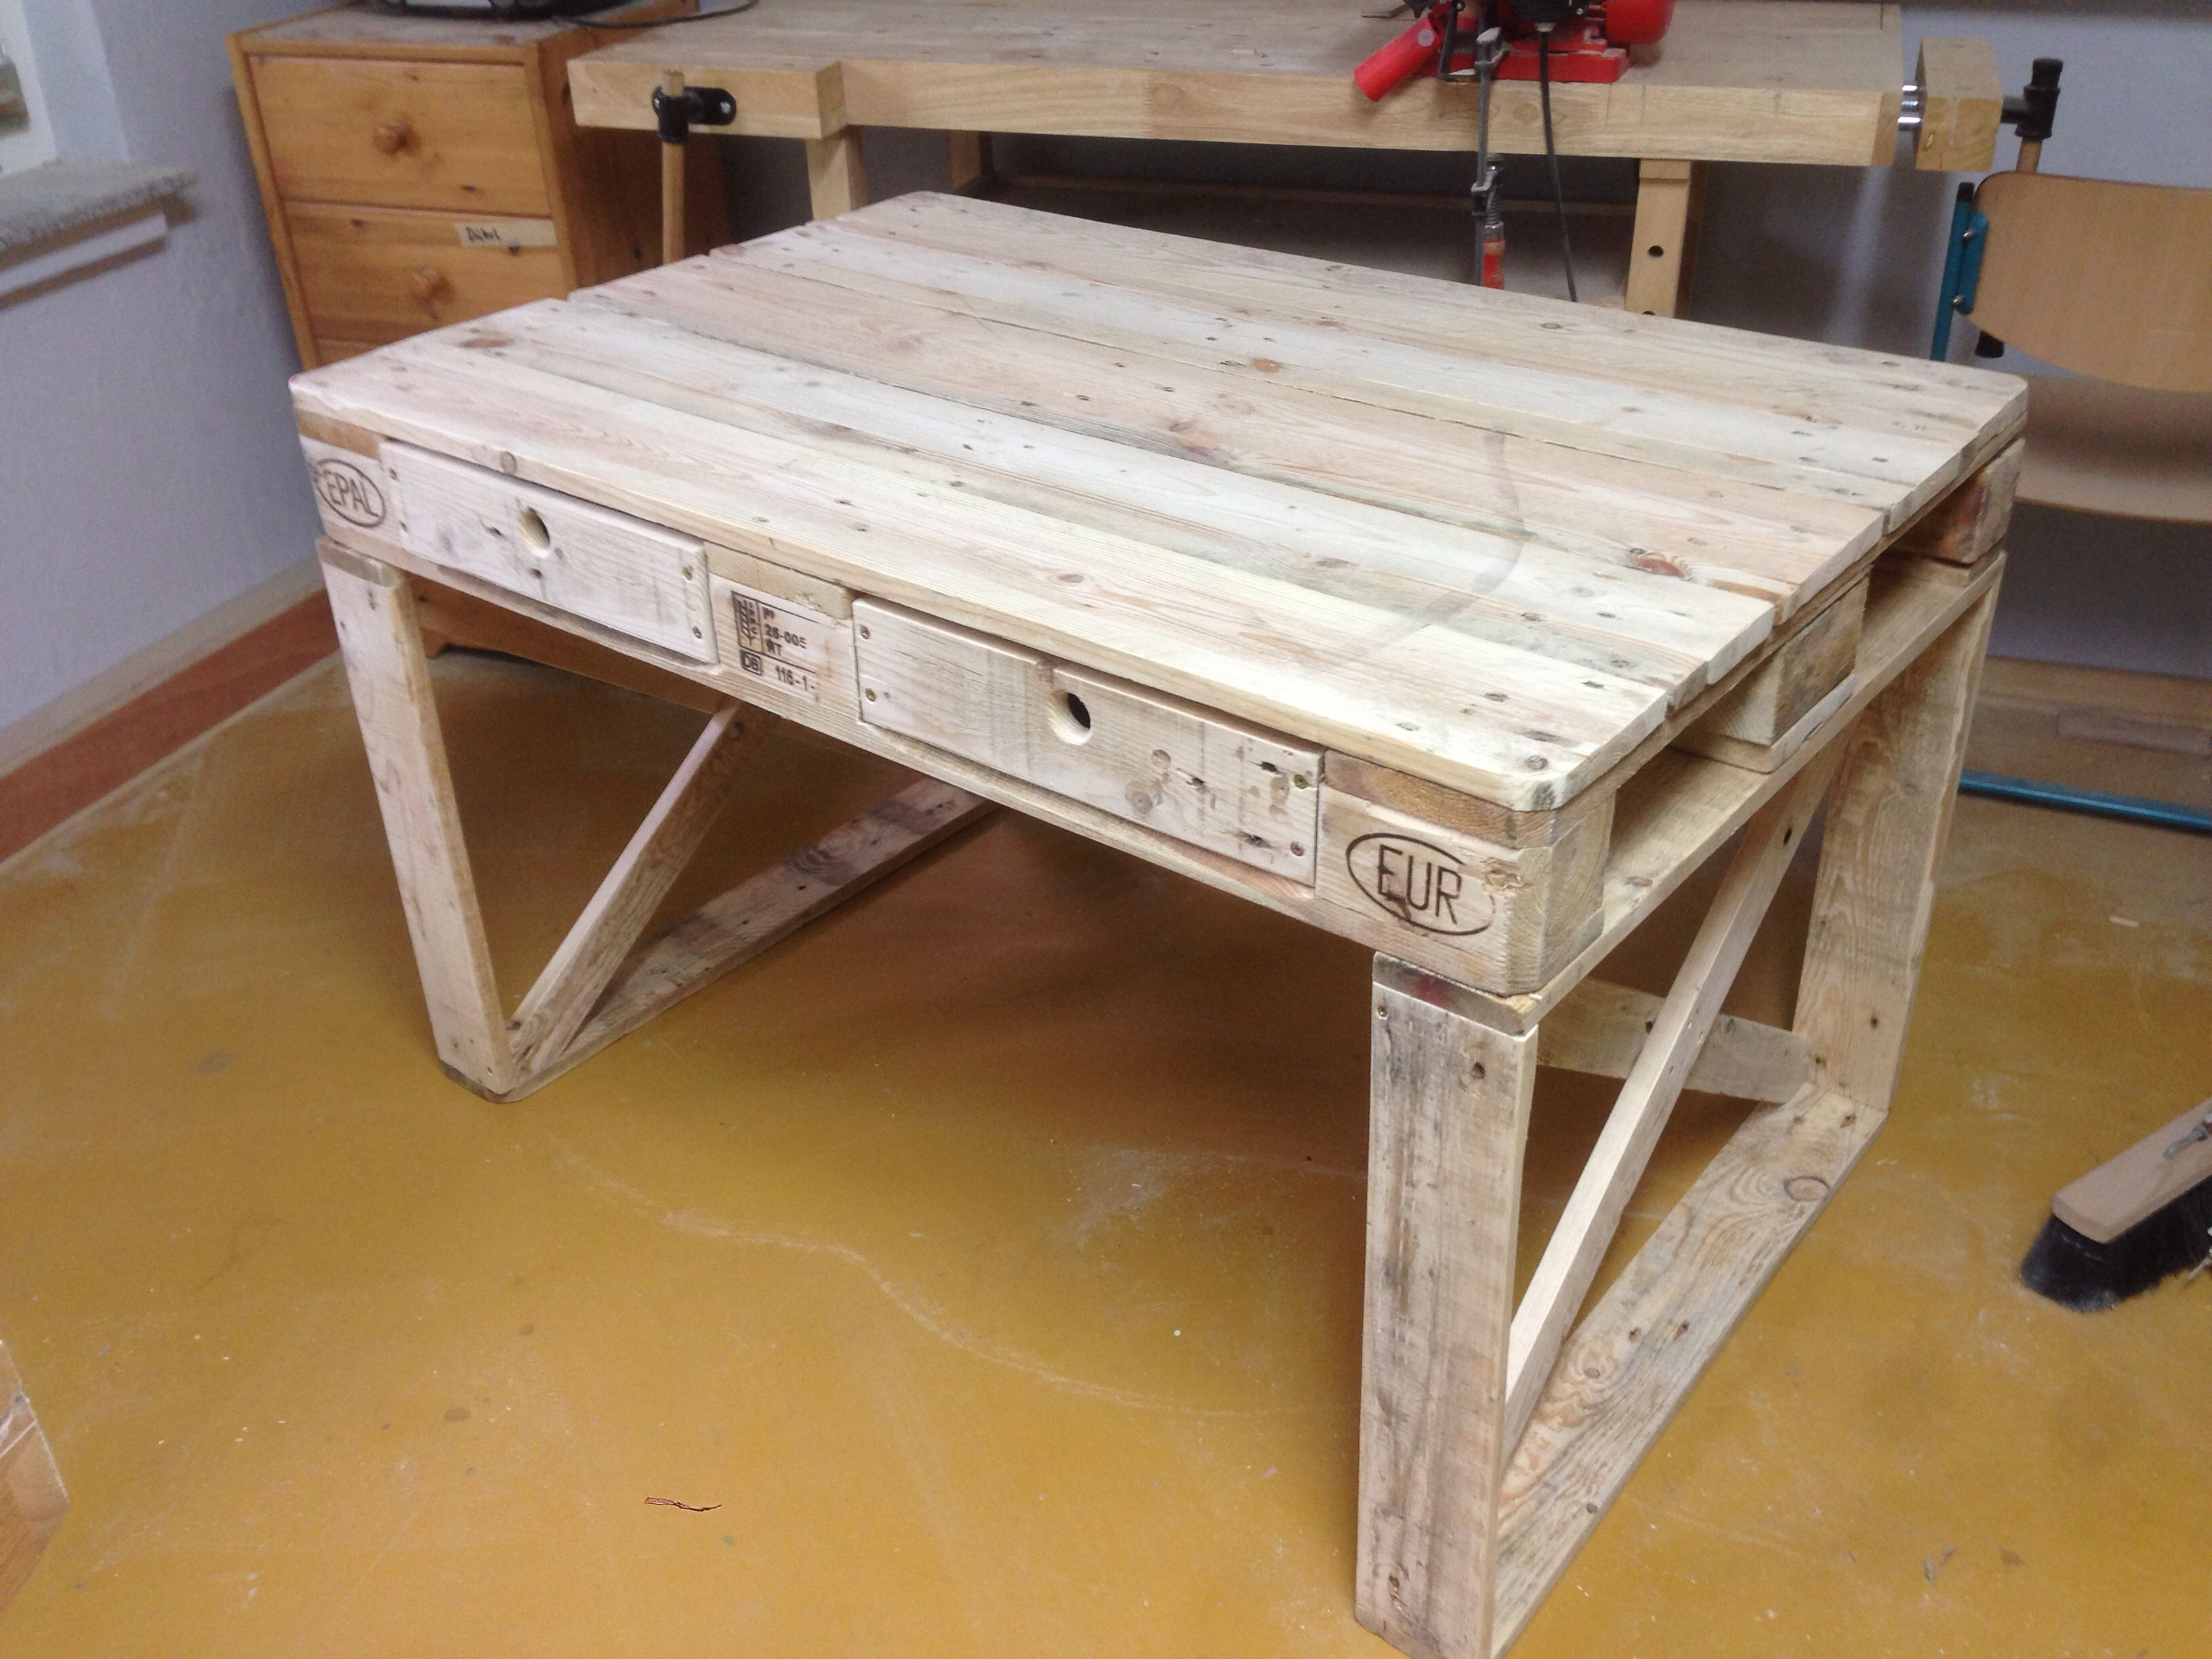 Pin By Tim Schmale On Selbstgebautes Pallet Diy Reclaimed Wood Projects Pallett Projects